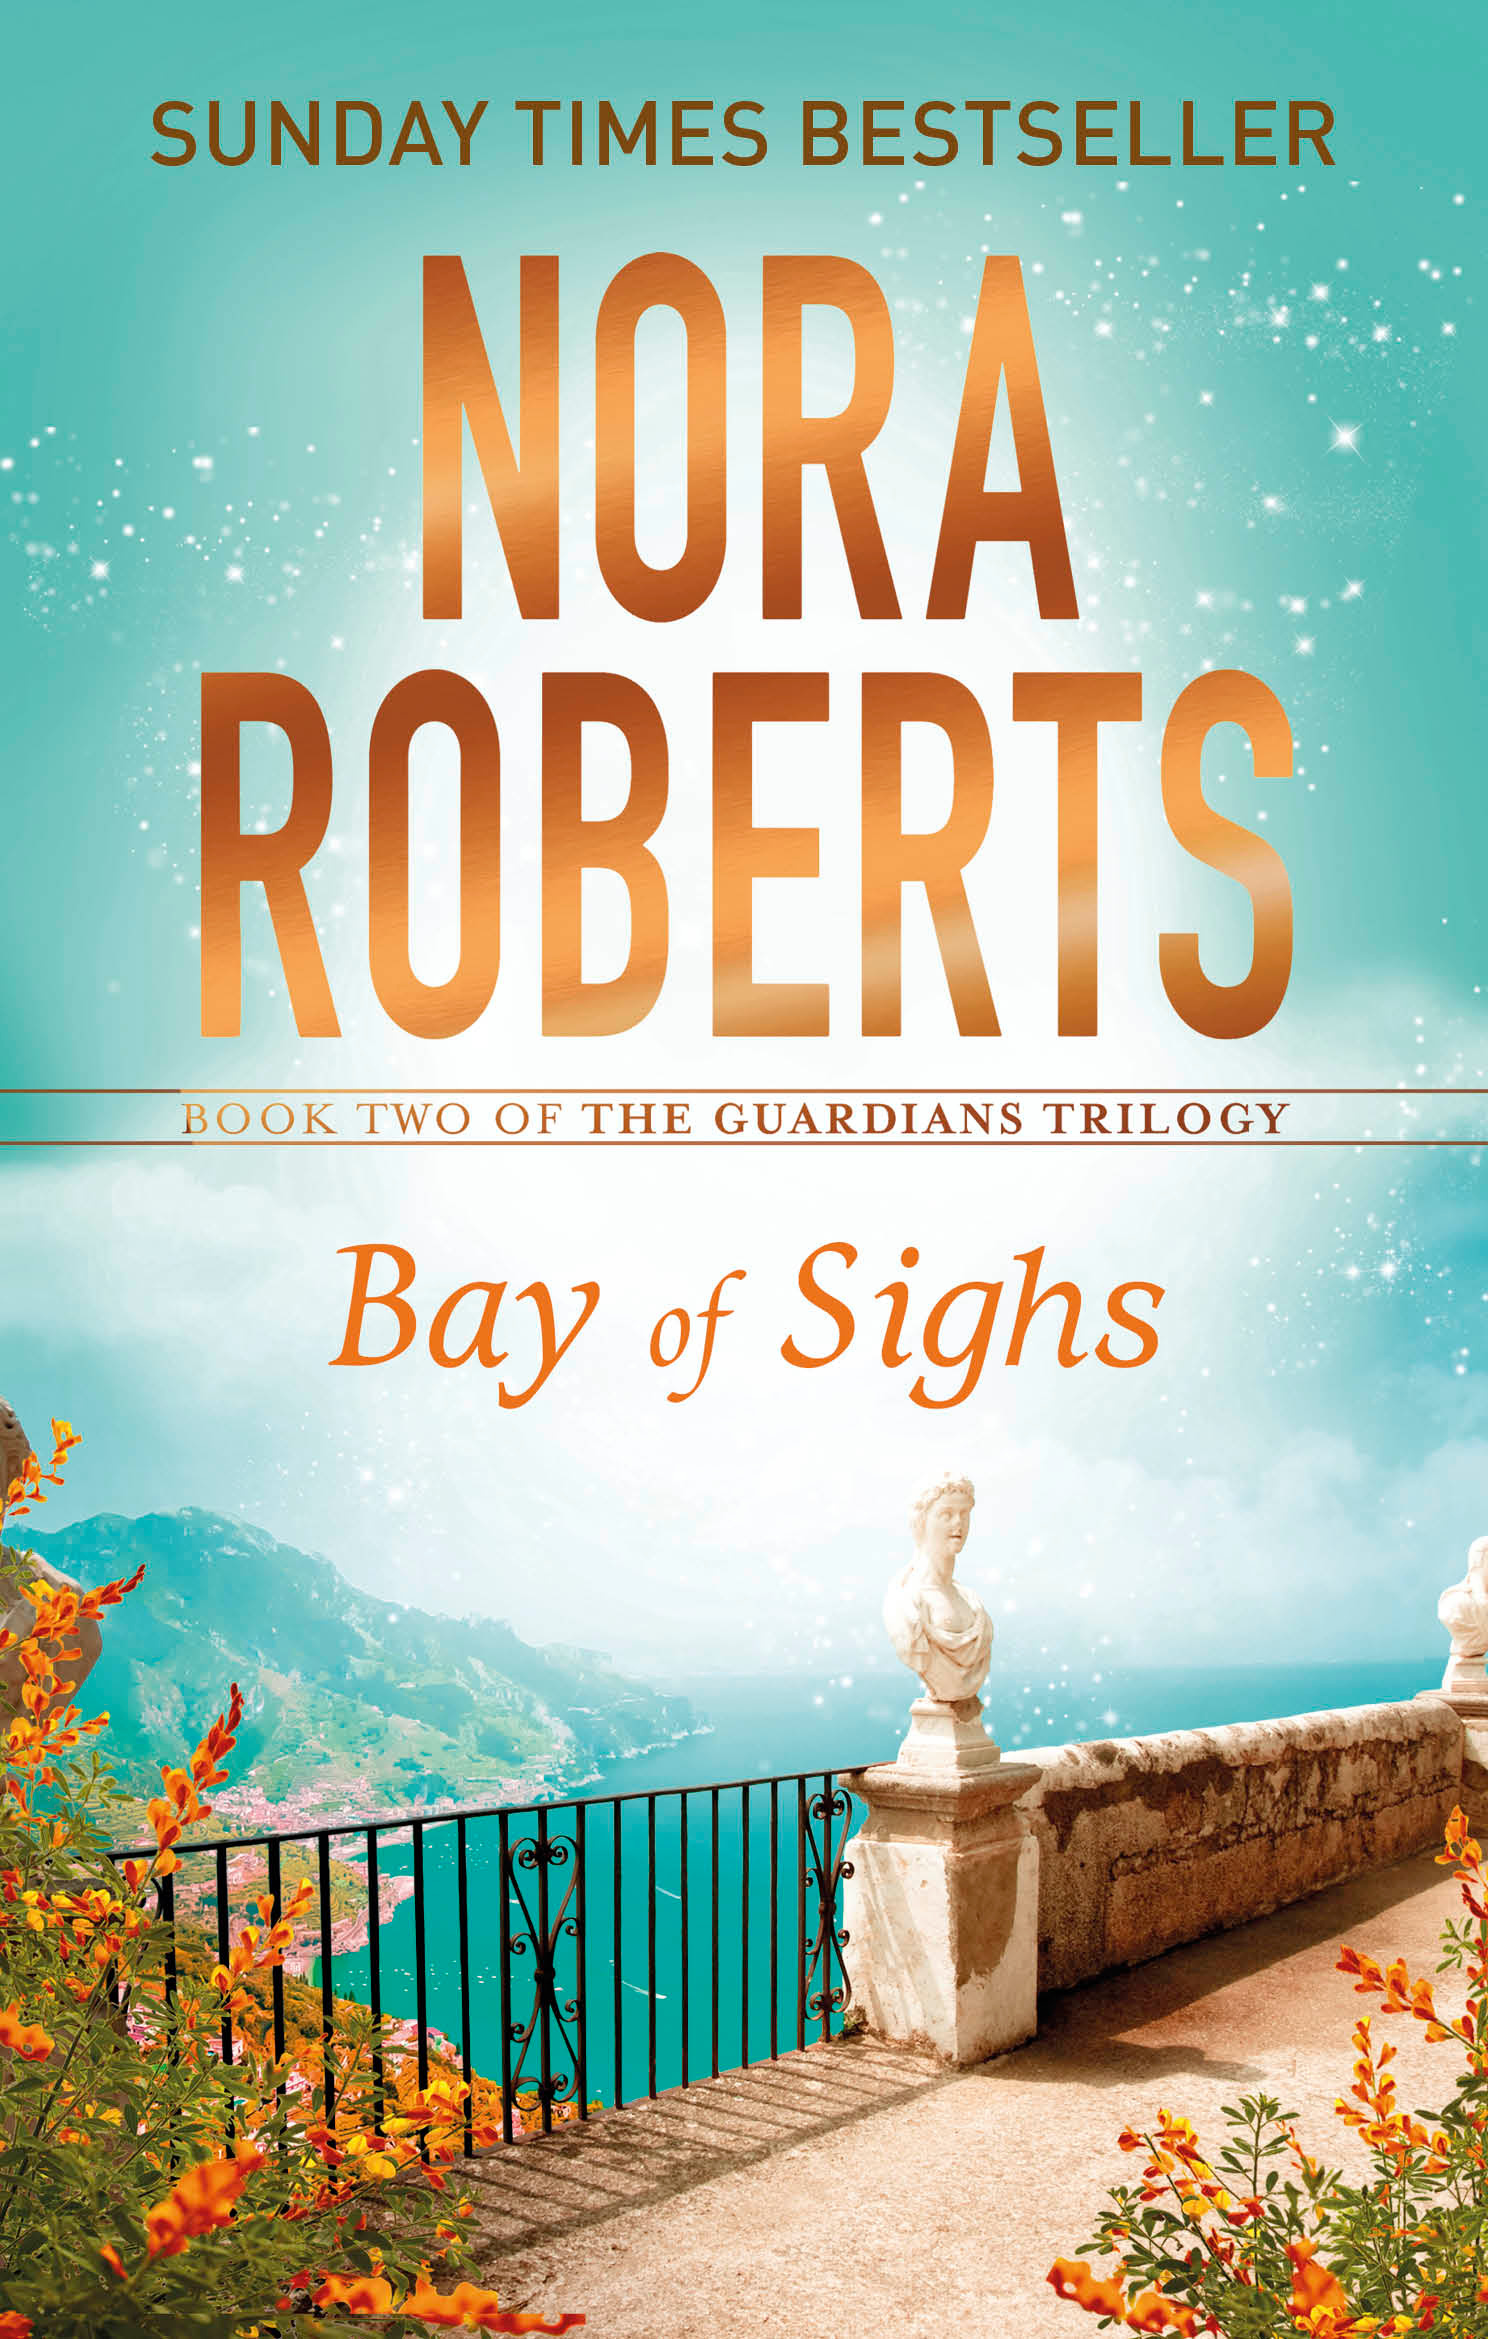 Bay of Sighs by Nora Roberts, ISBN: 9780349407869